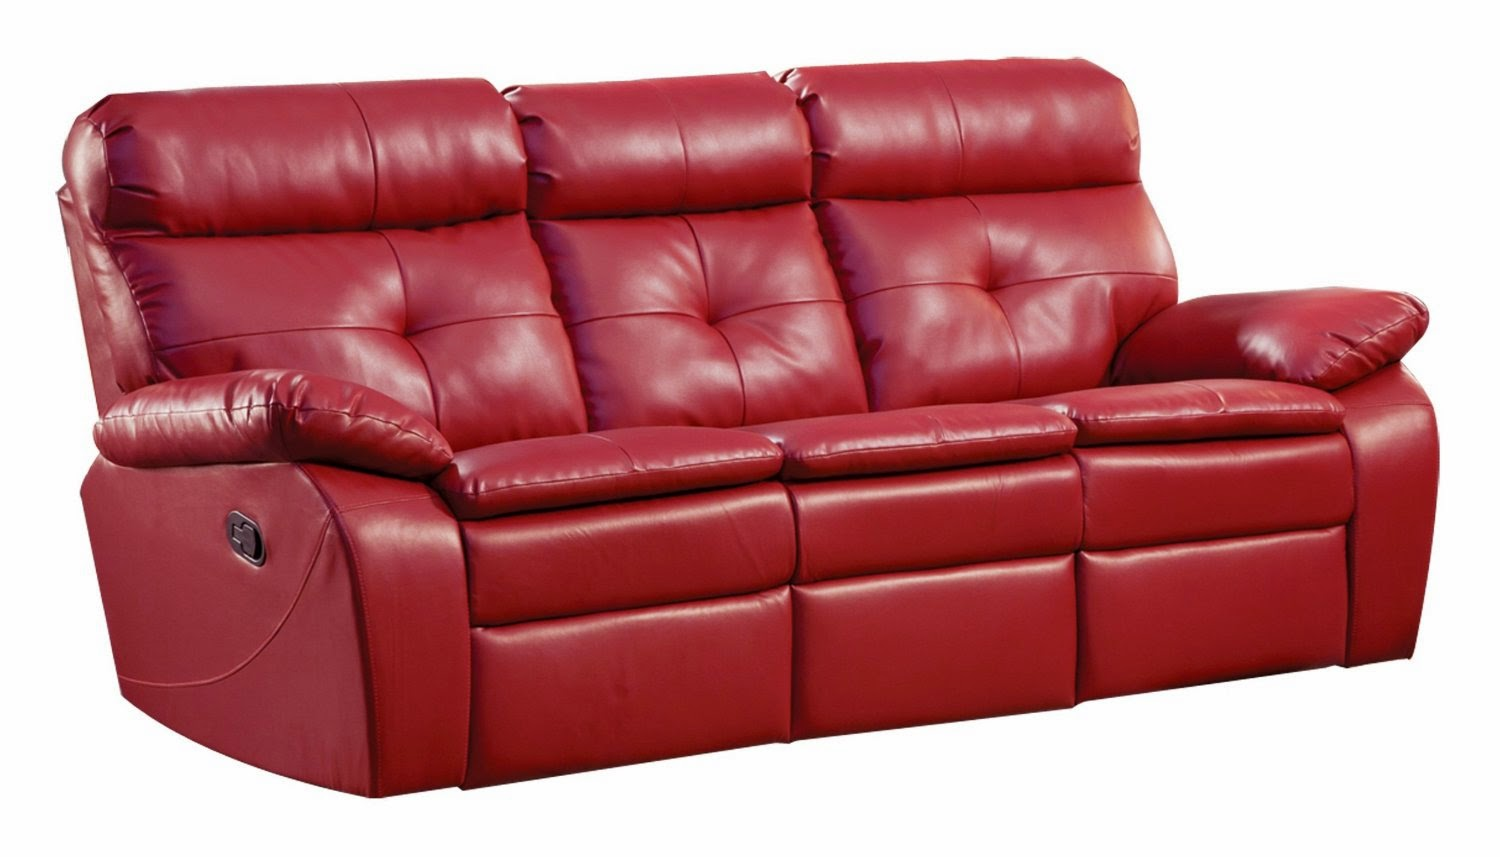 The best reclining sofa reviews red leather reclining sofa and loveseat Leather loveseat recliners